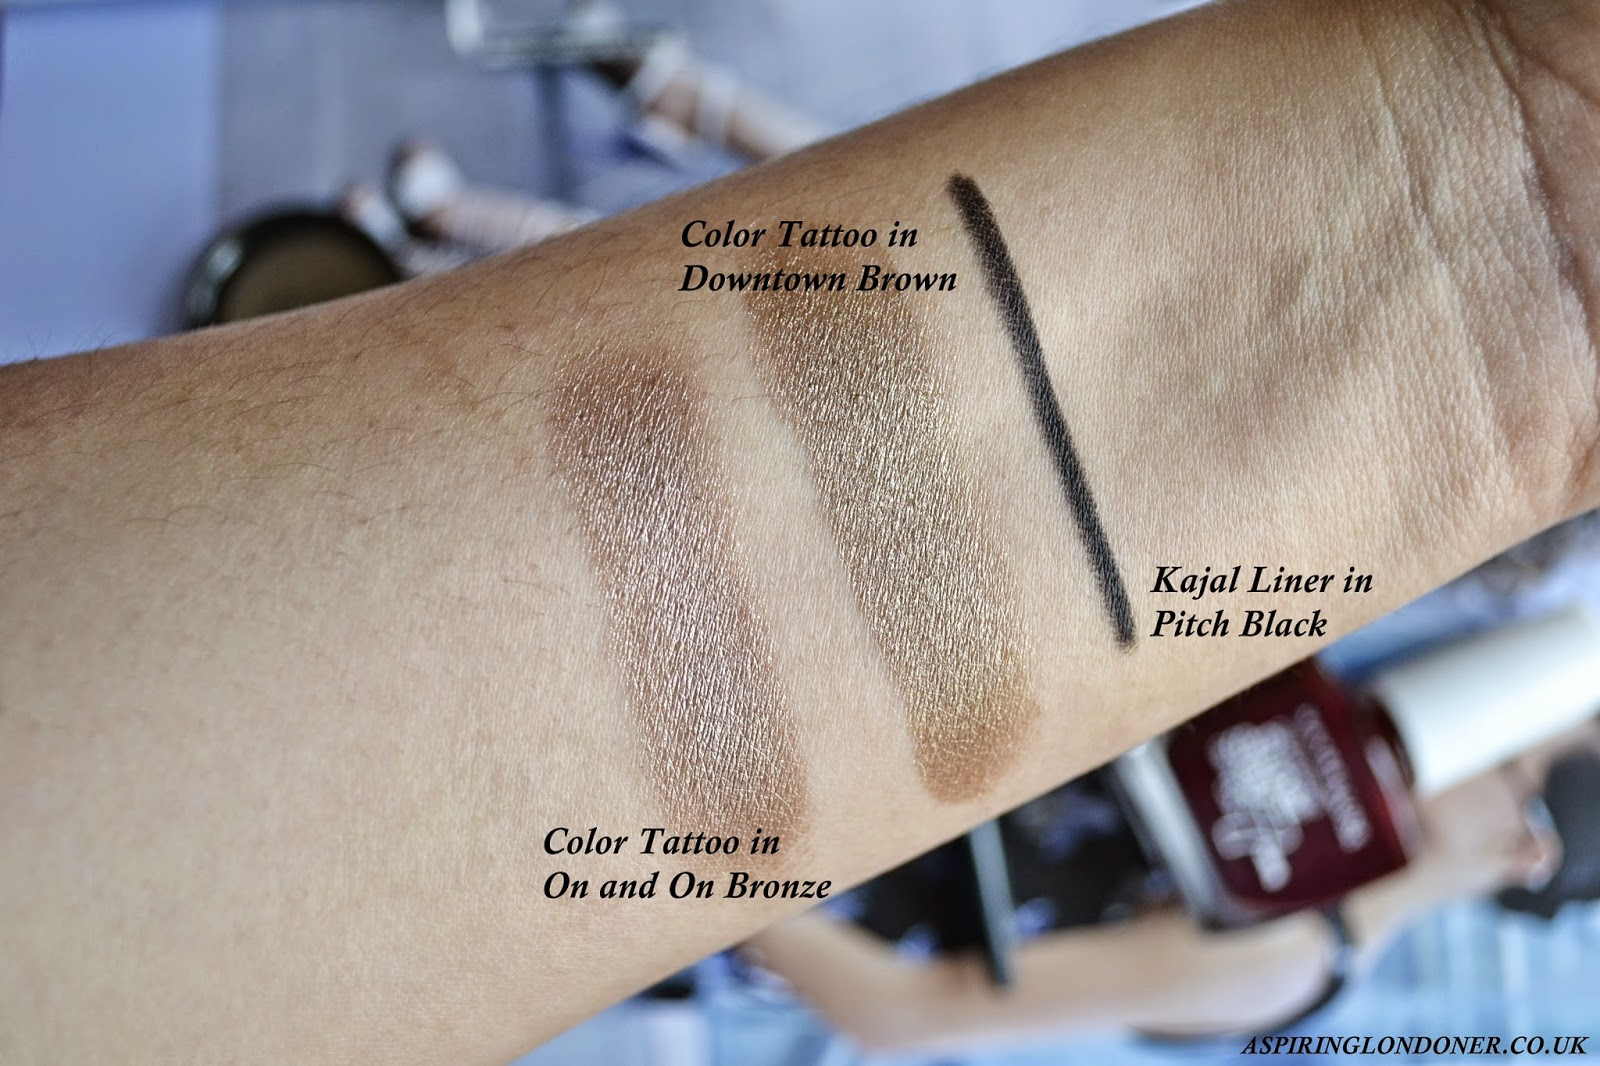 Maybelline Color Tattoo Eyeshadow Downtown Brown Swatch, Kajal Liner Pitch Black Swatch - Aspiring Londoner